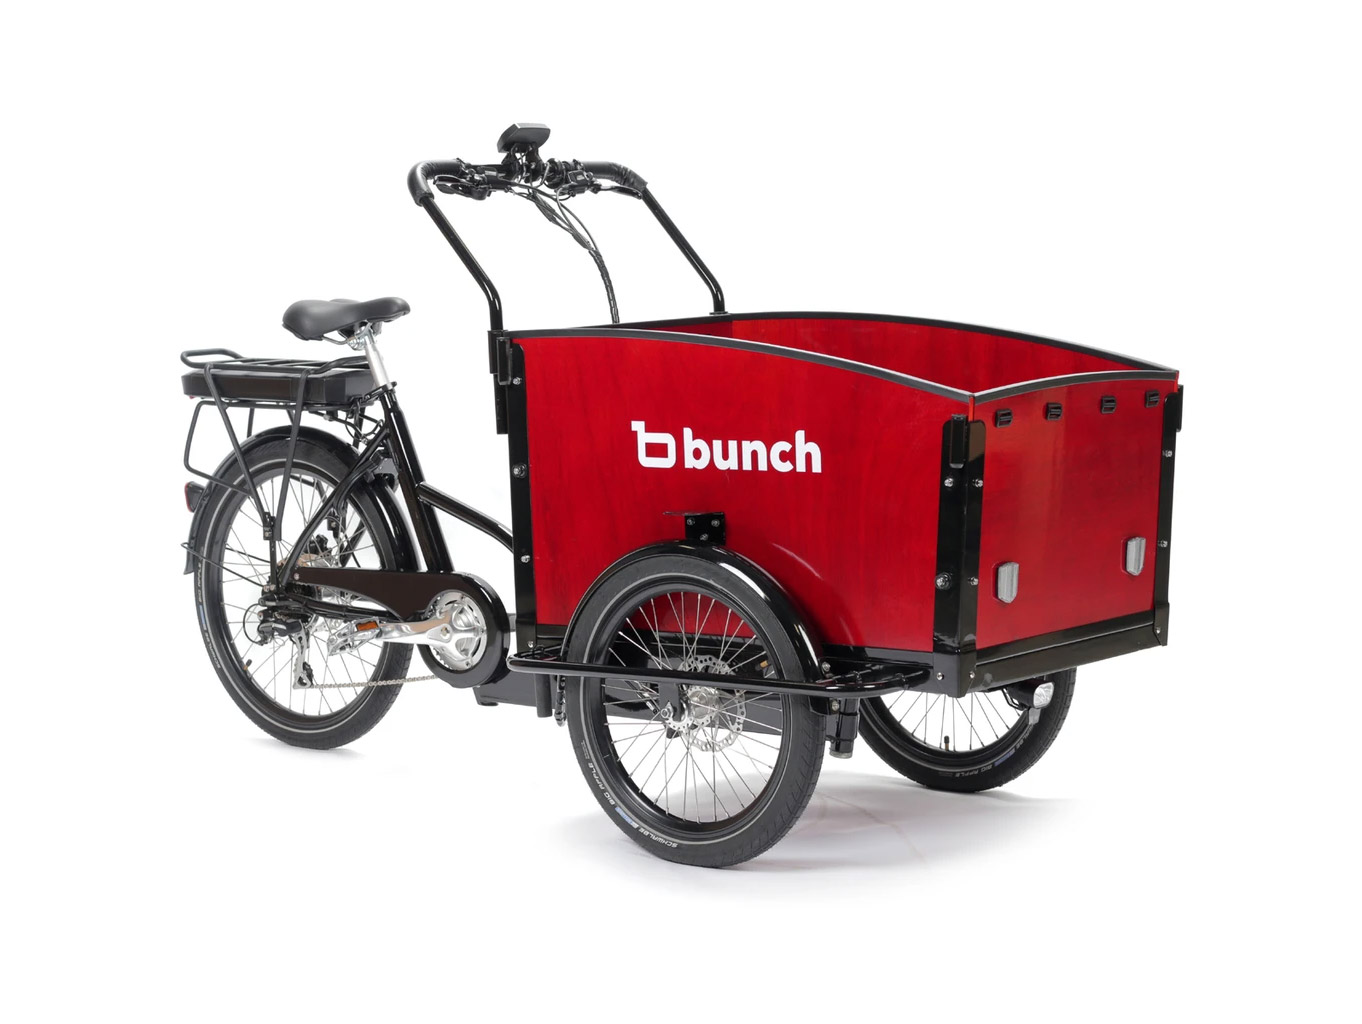 Bunch Cargo Bike - Electric Trike Front Load Toddler Carrier Bike